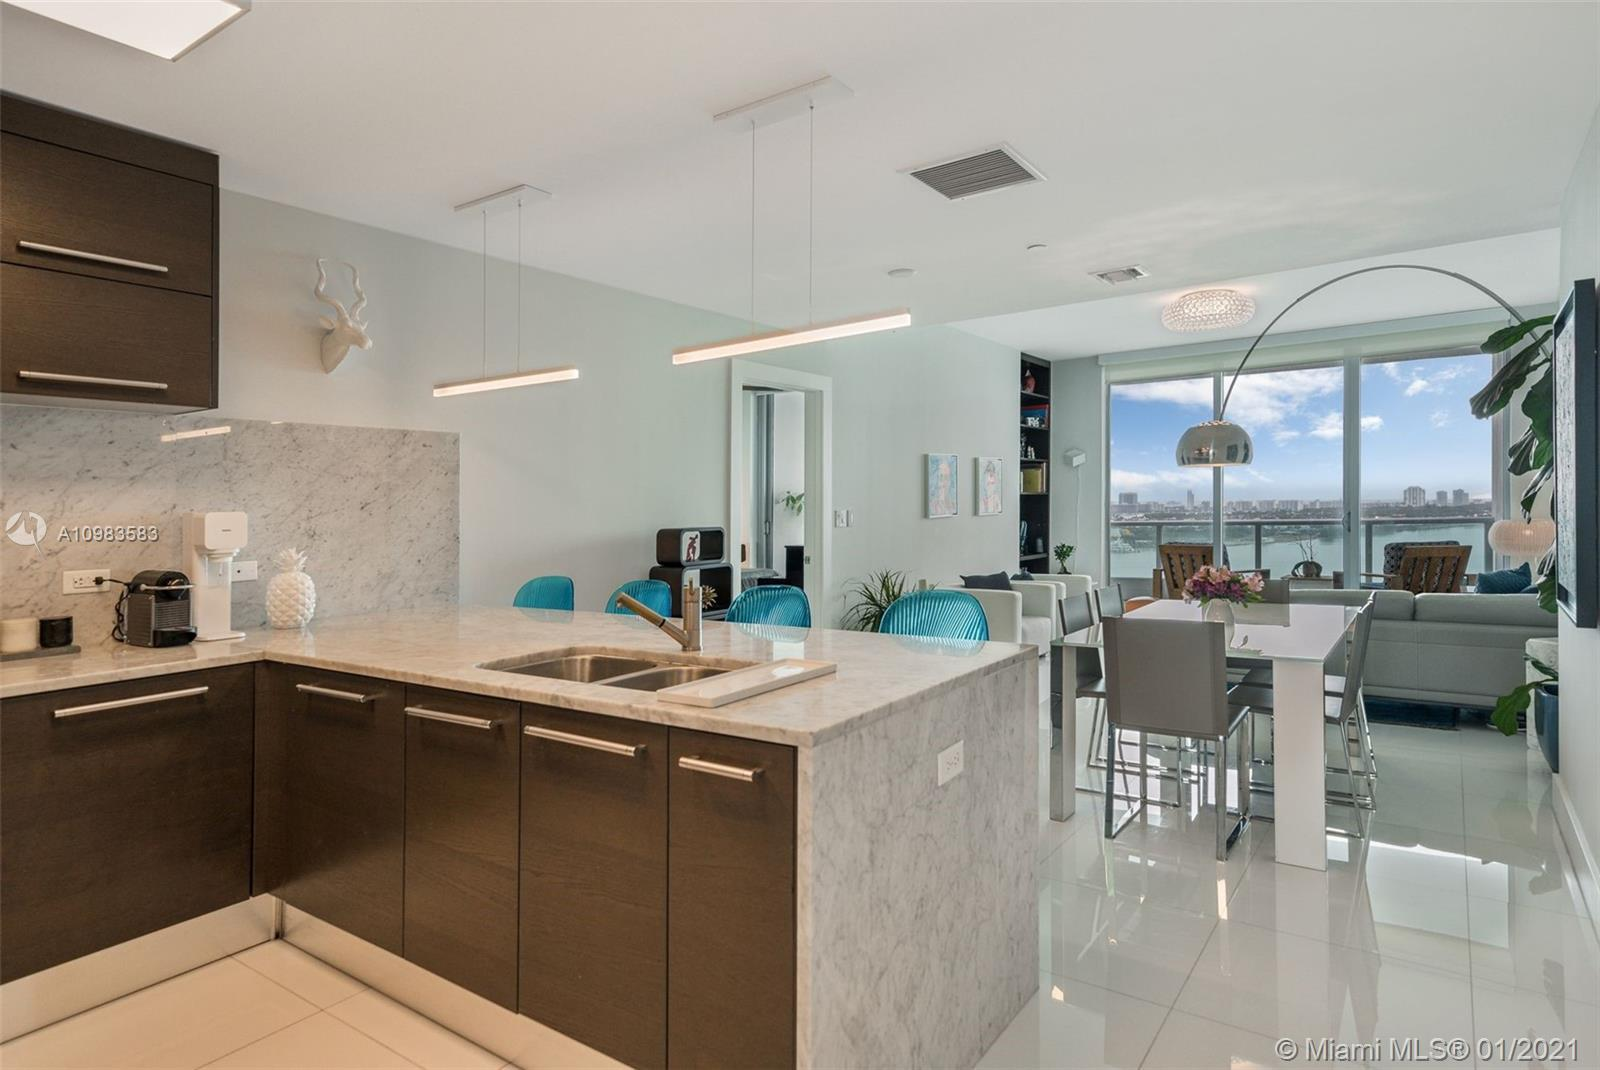 2BED/3BATH+DEN and private elevator. 900 Biscayne is located right on the Bay in the epicenter of Mi